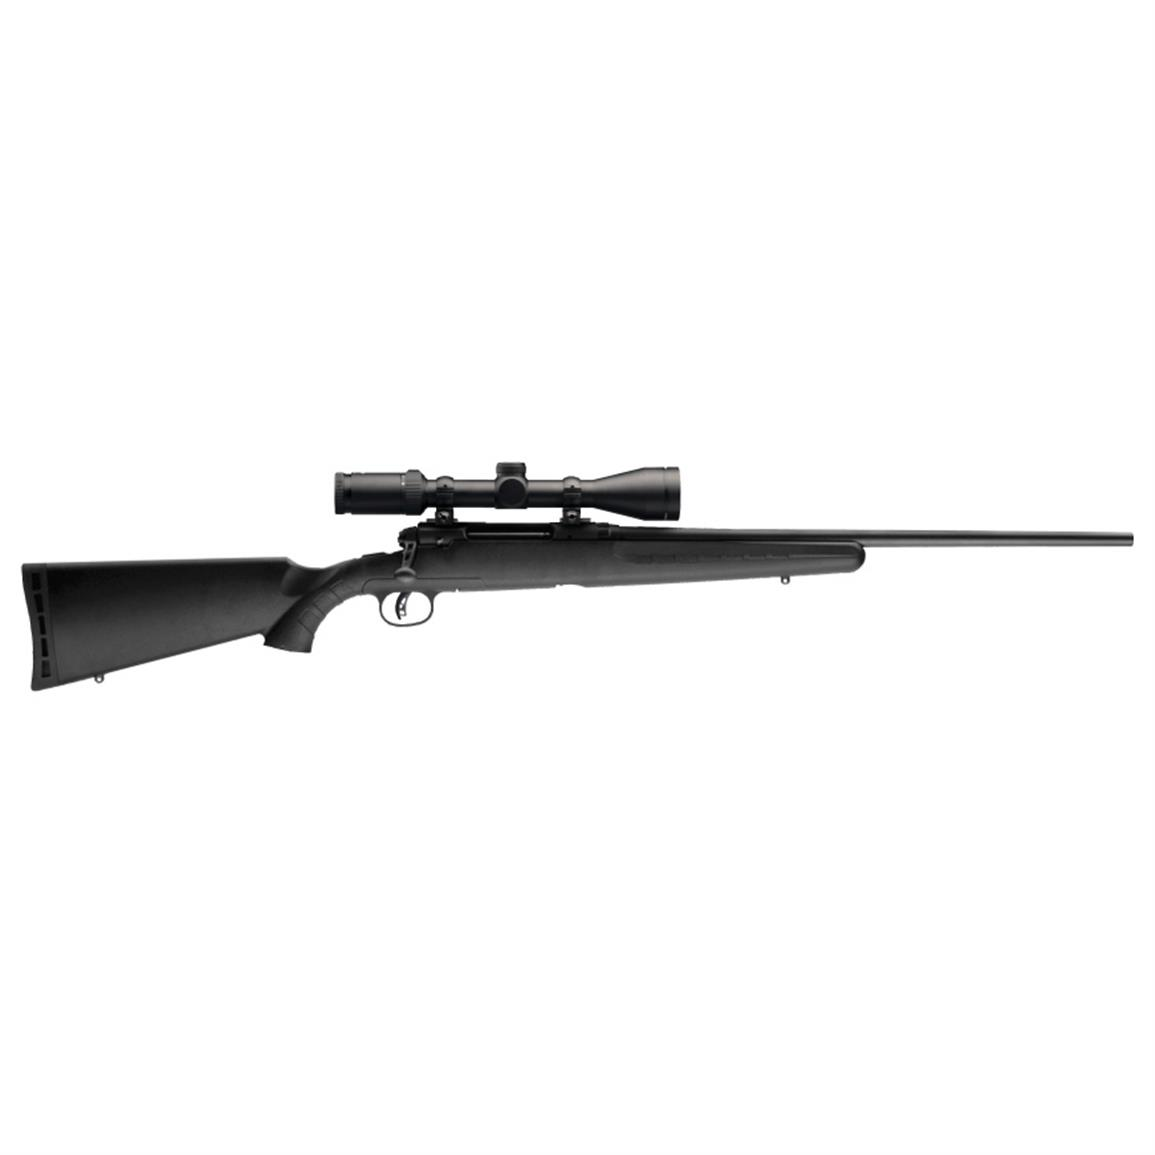 Savage Axis II XP, Bolt Action, .22-250 Remington, Centerfire, 22222, 011356222220, 22 inch Barrel